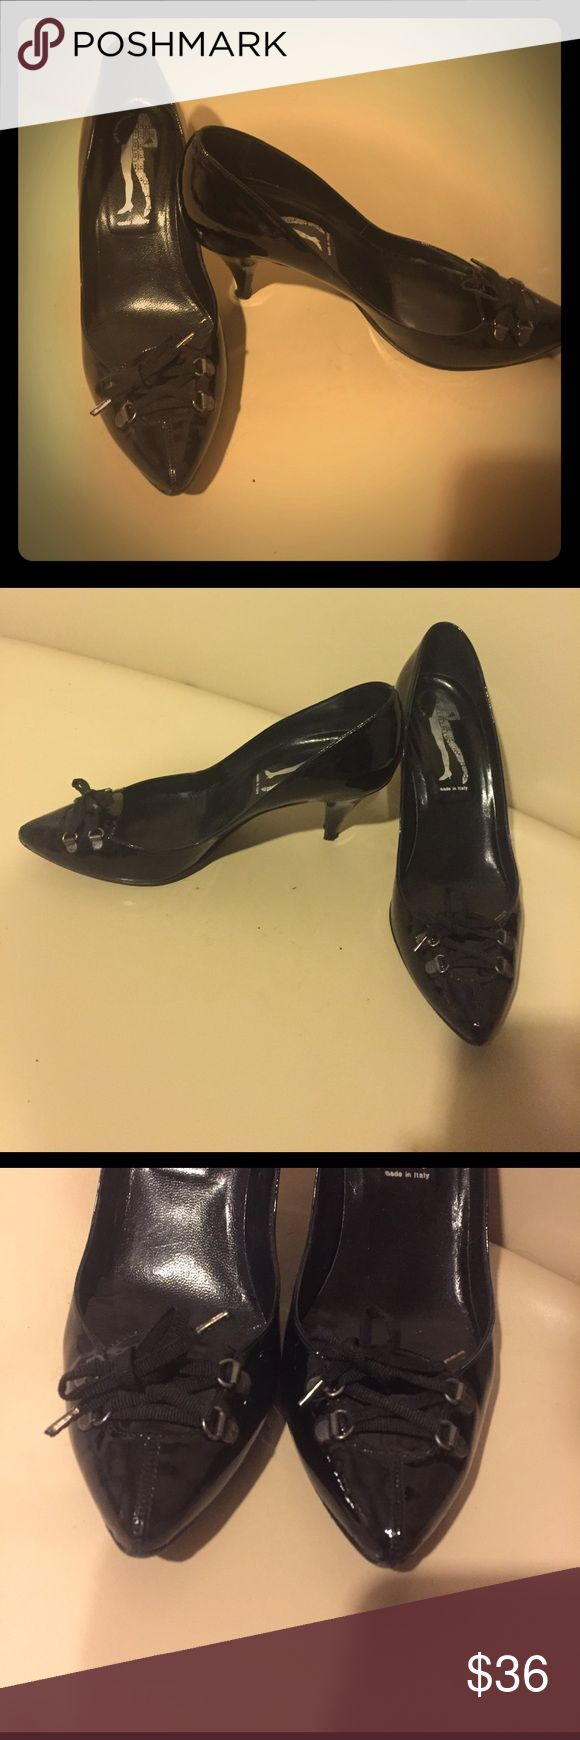 Black Sigerson Morrison Heels Size 8 Black Sigerson Morrison heels size 8. Good used condition. Cute bows on the toes. See pictures for any signs of wear. Belle by Sigerson Morrison Shoes Heels